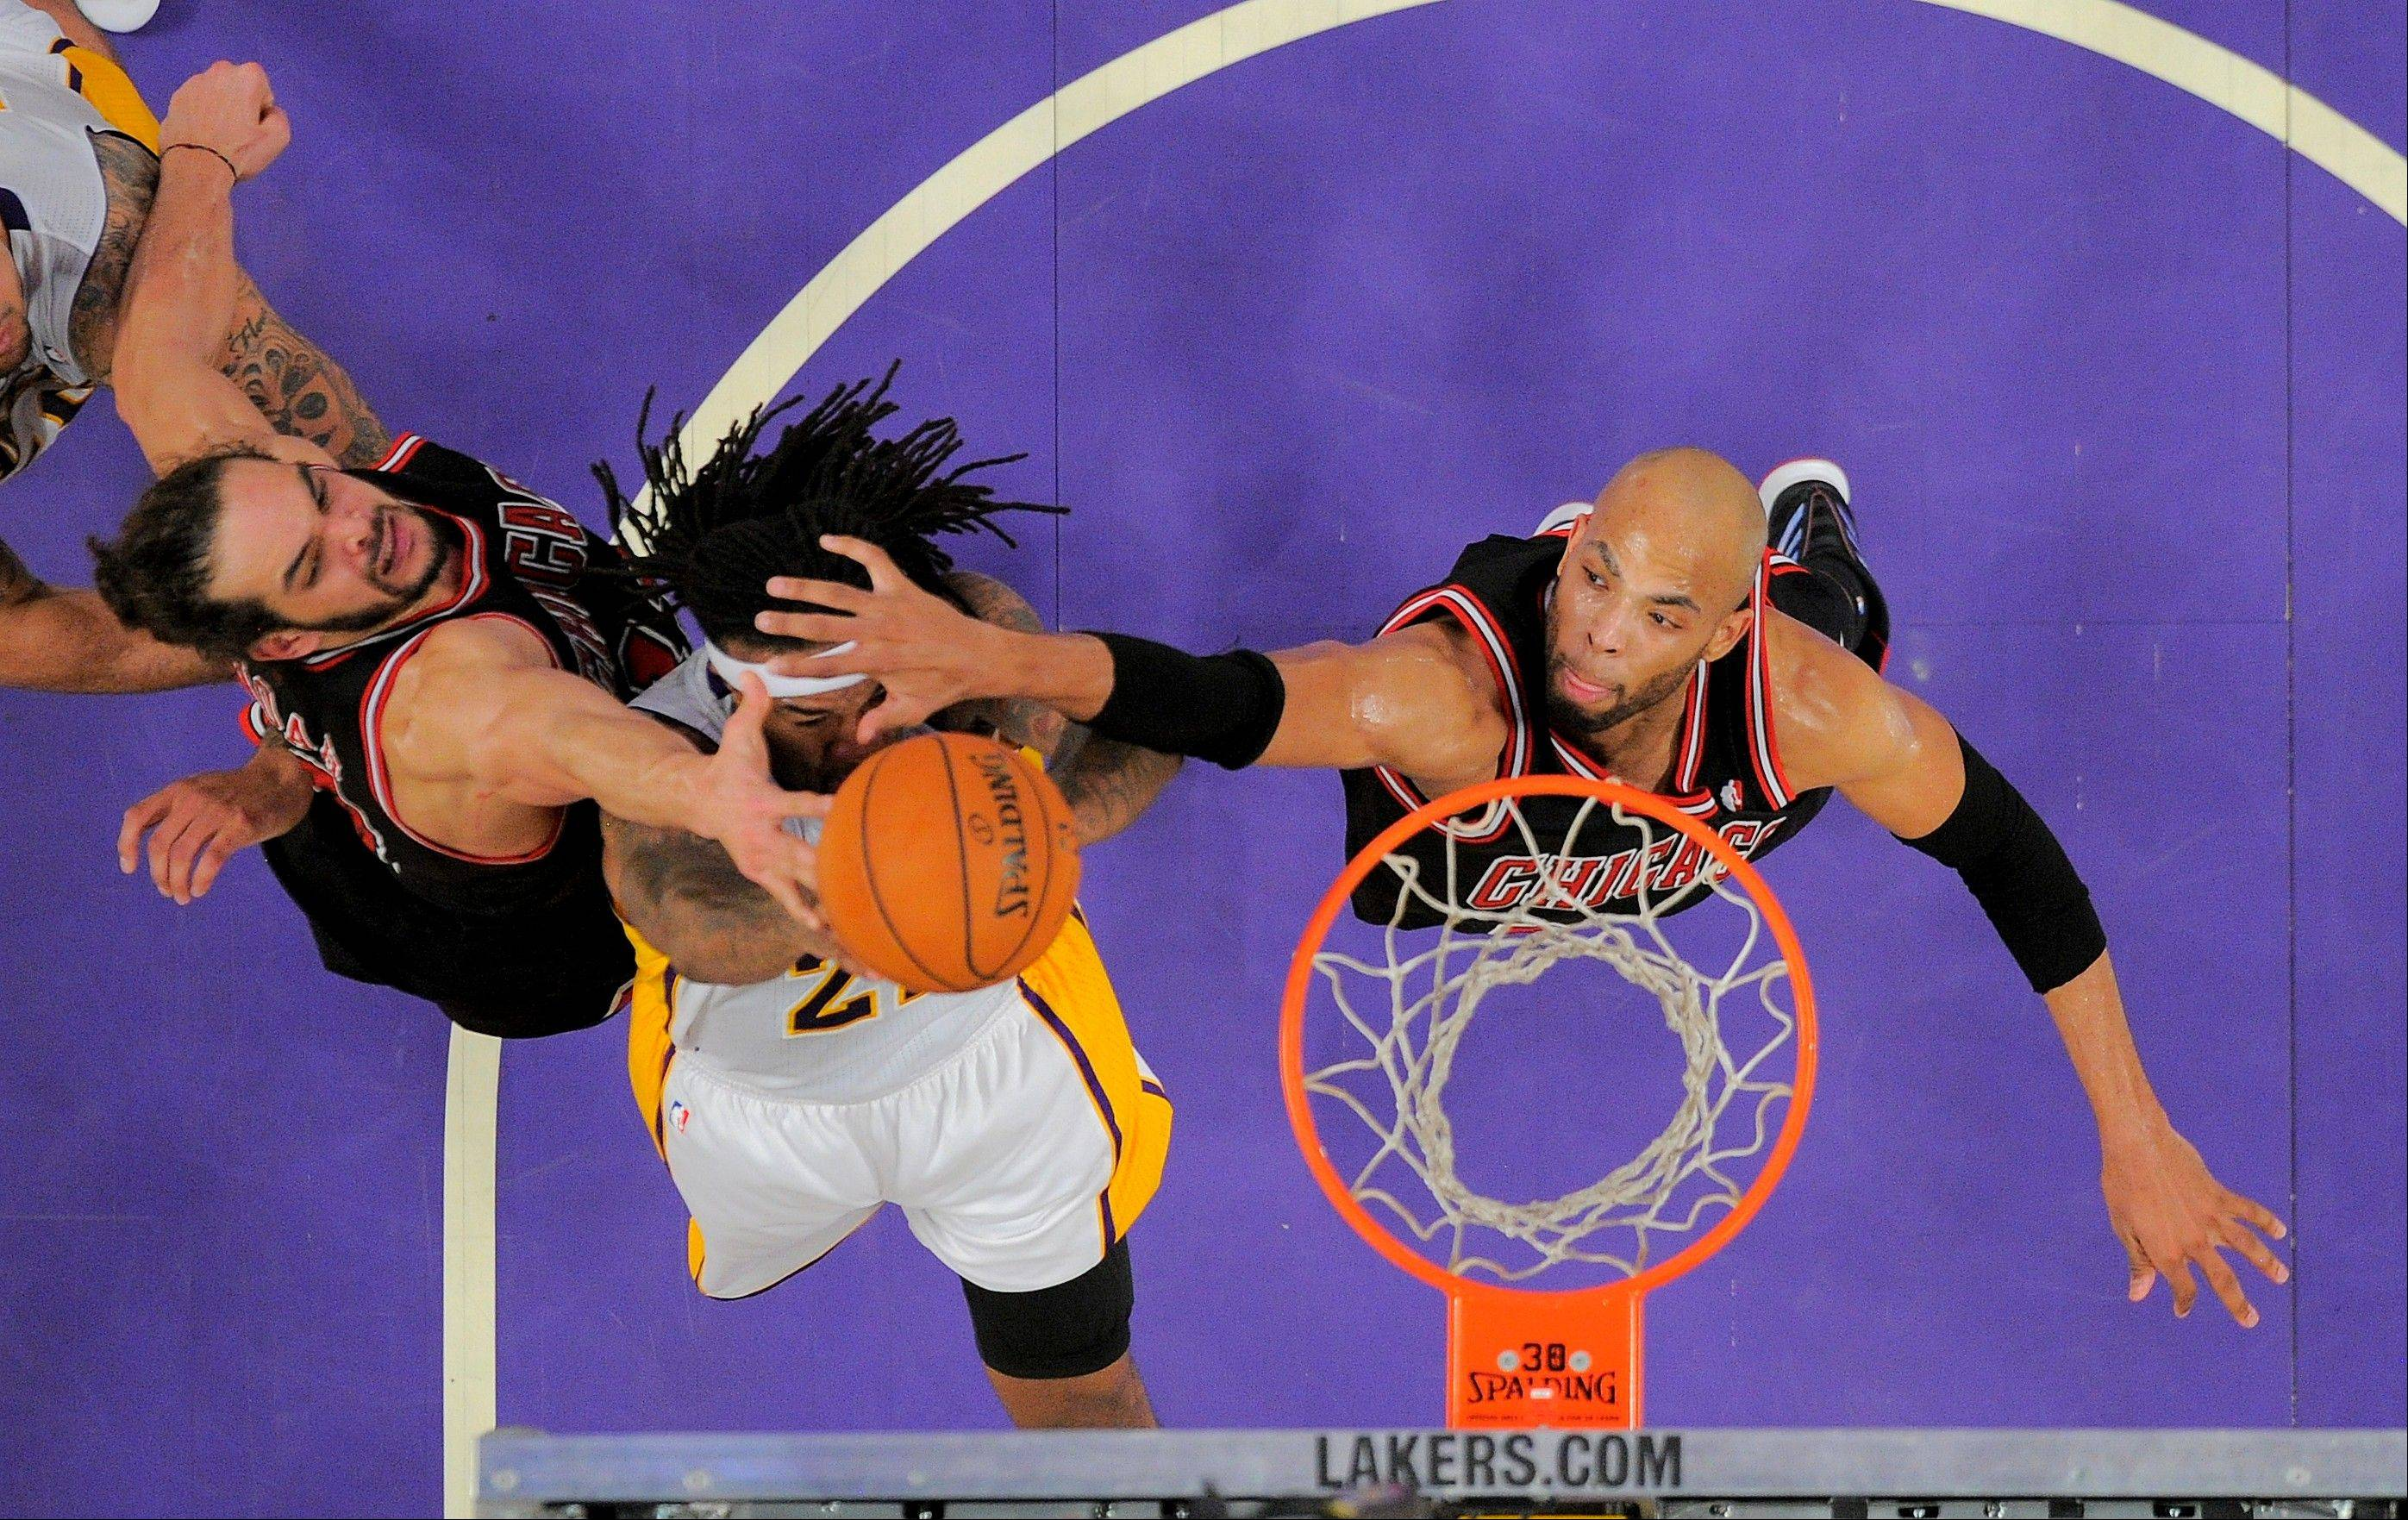 Los Angeles Lakers' Jordan Hill, middle, shoots between Chicago Bulls' Joakim Noah, left, and Taj Gibson during the first half of an NBA basketball game in Los Angeles, Sunday, Feb. 9, 2014.